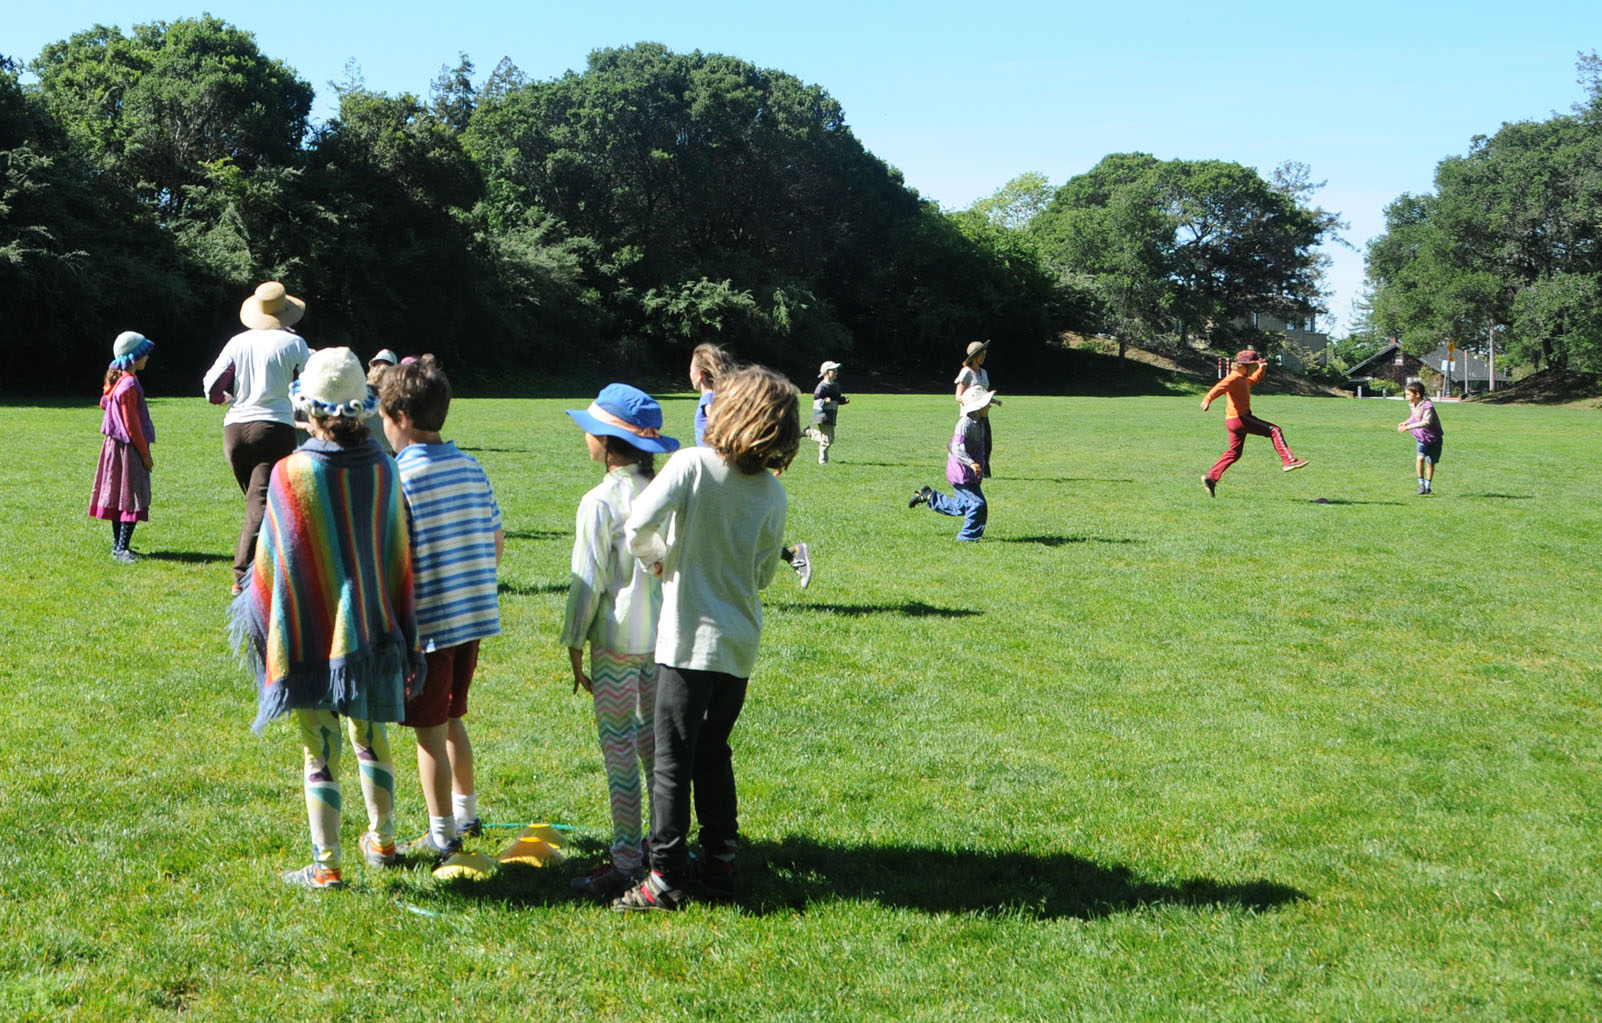 Grade Campers playing games on a field